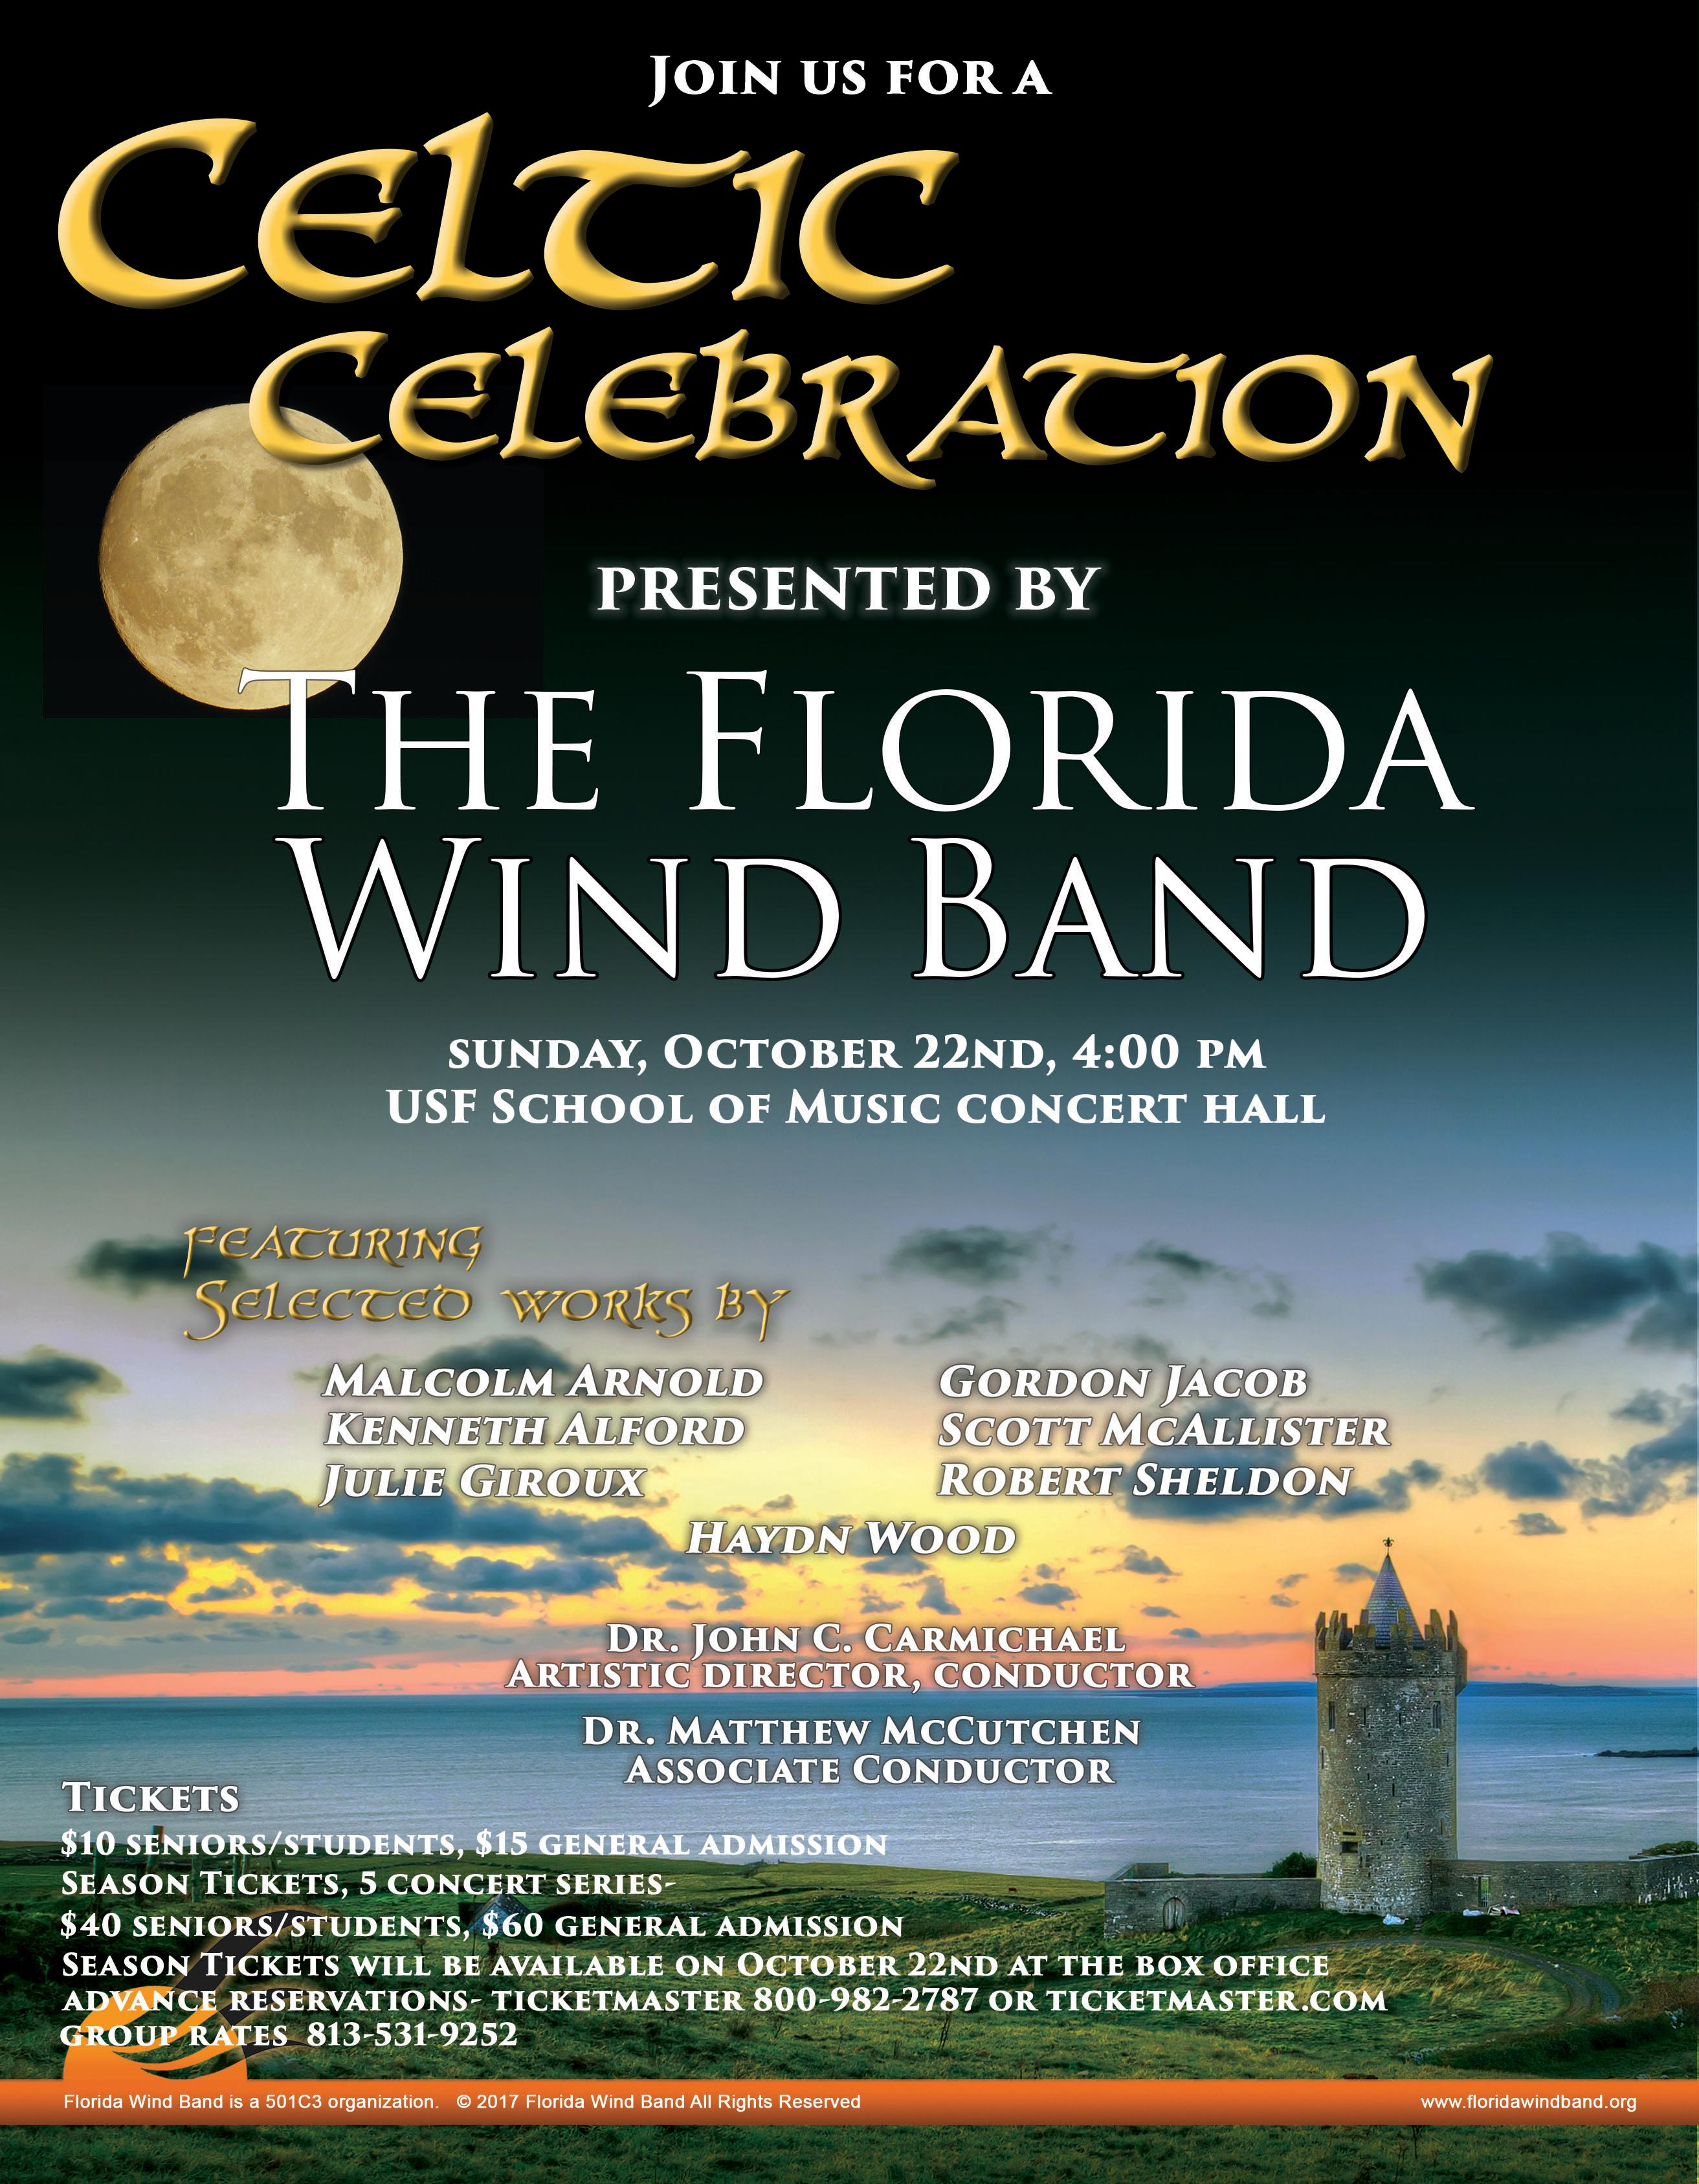 Celtic Celebration  presented by The Florida Wind Band